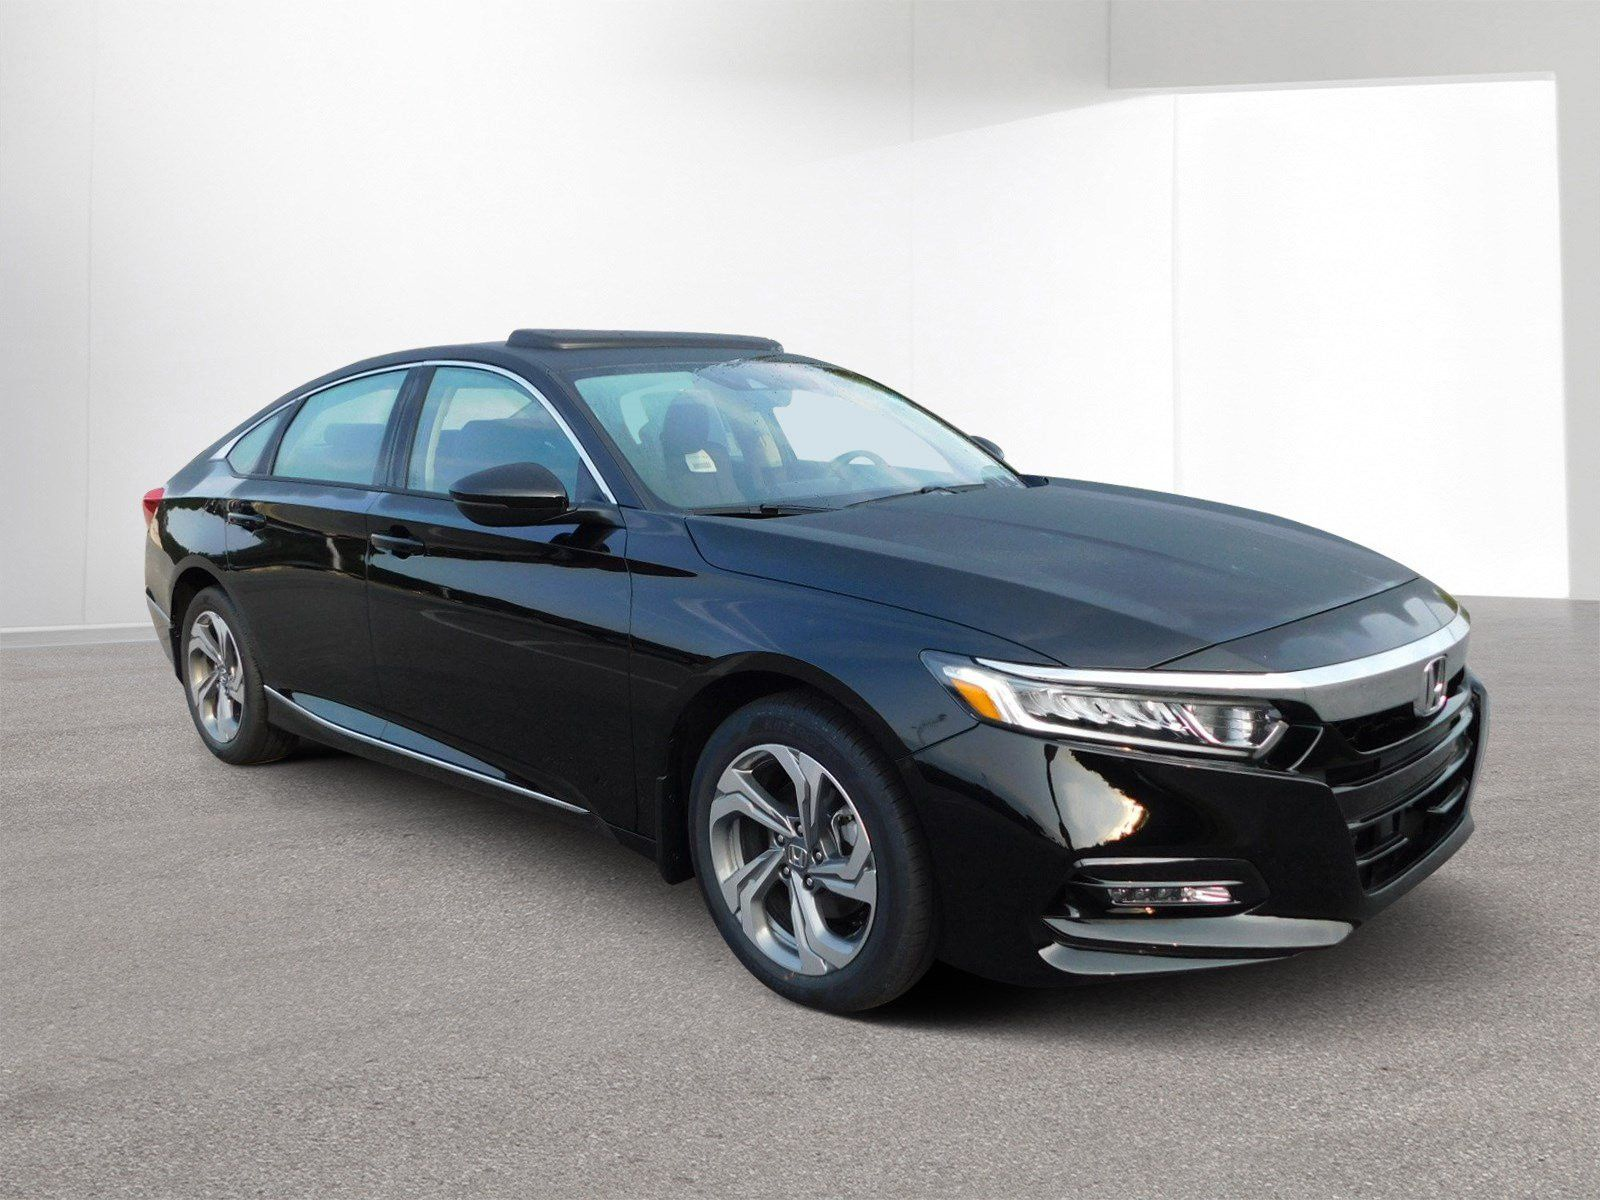 New 2018 Honda Accord EX L 1 5T 4dr Car in Milledgeville H